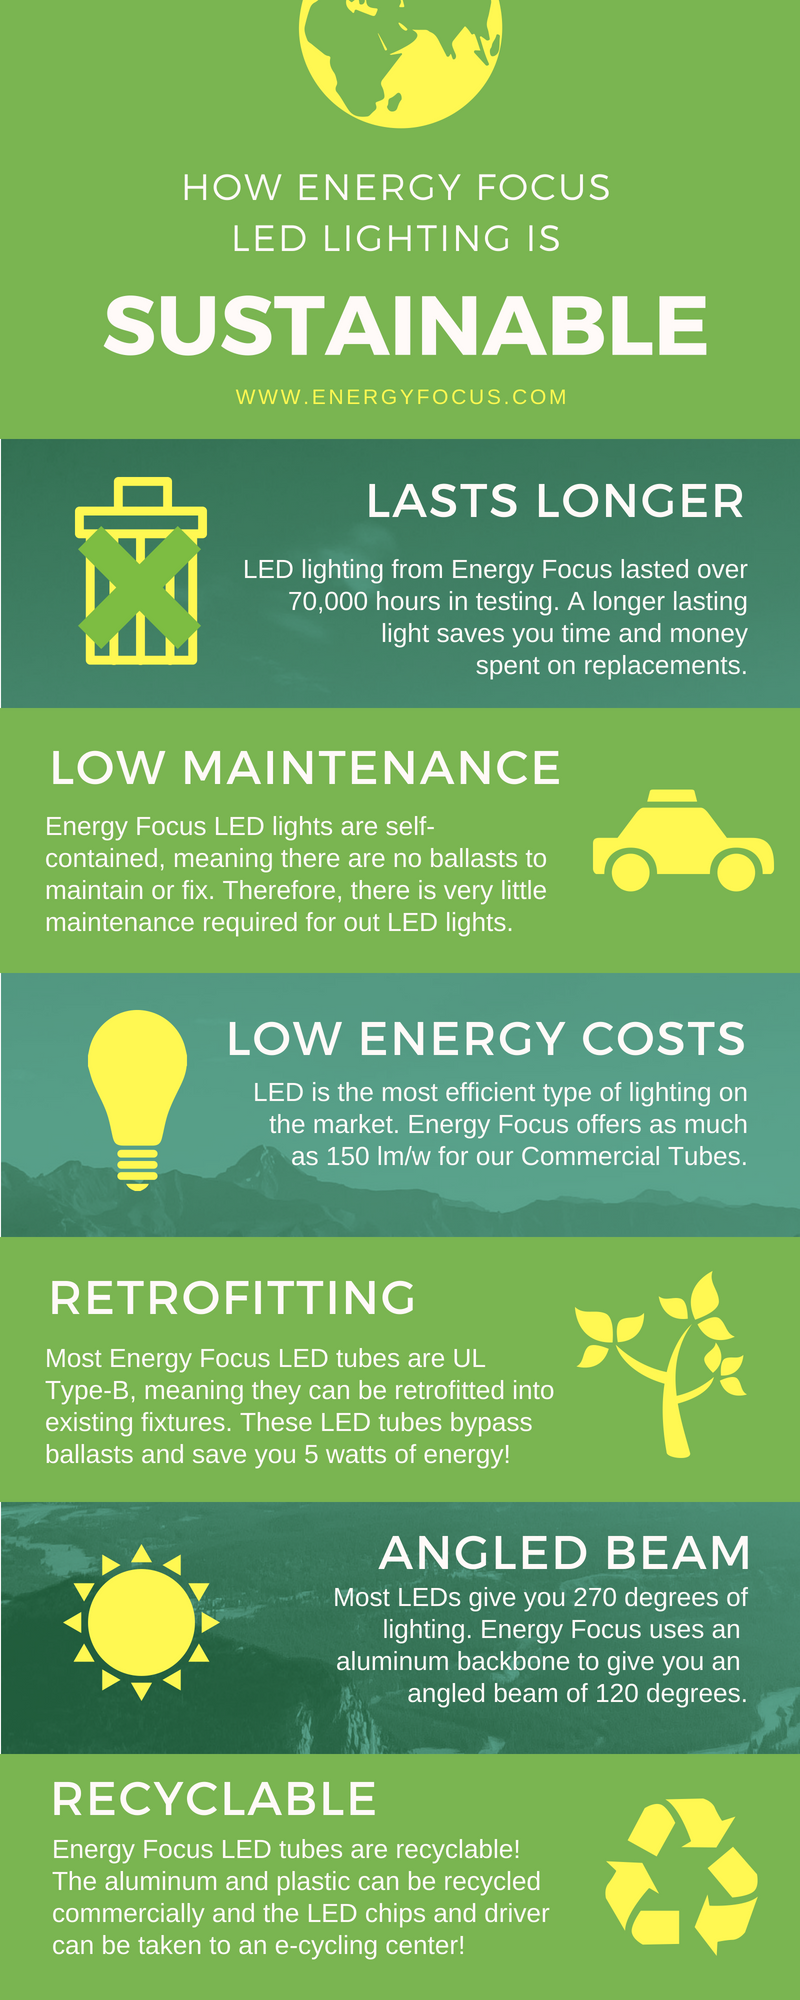 What Makes Led Lighting Sustainable Led Lighting Reduces Electricity Consumption And This Reduction Creates A Small Energy Focus Sustainable Energy Energy